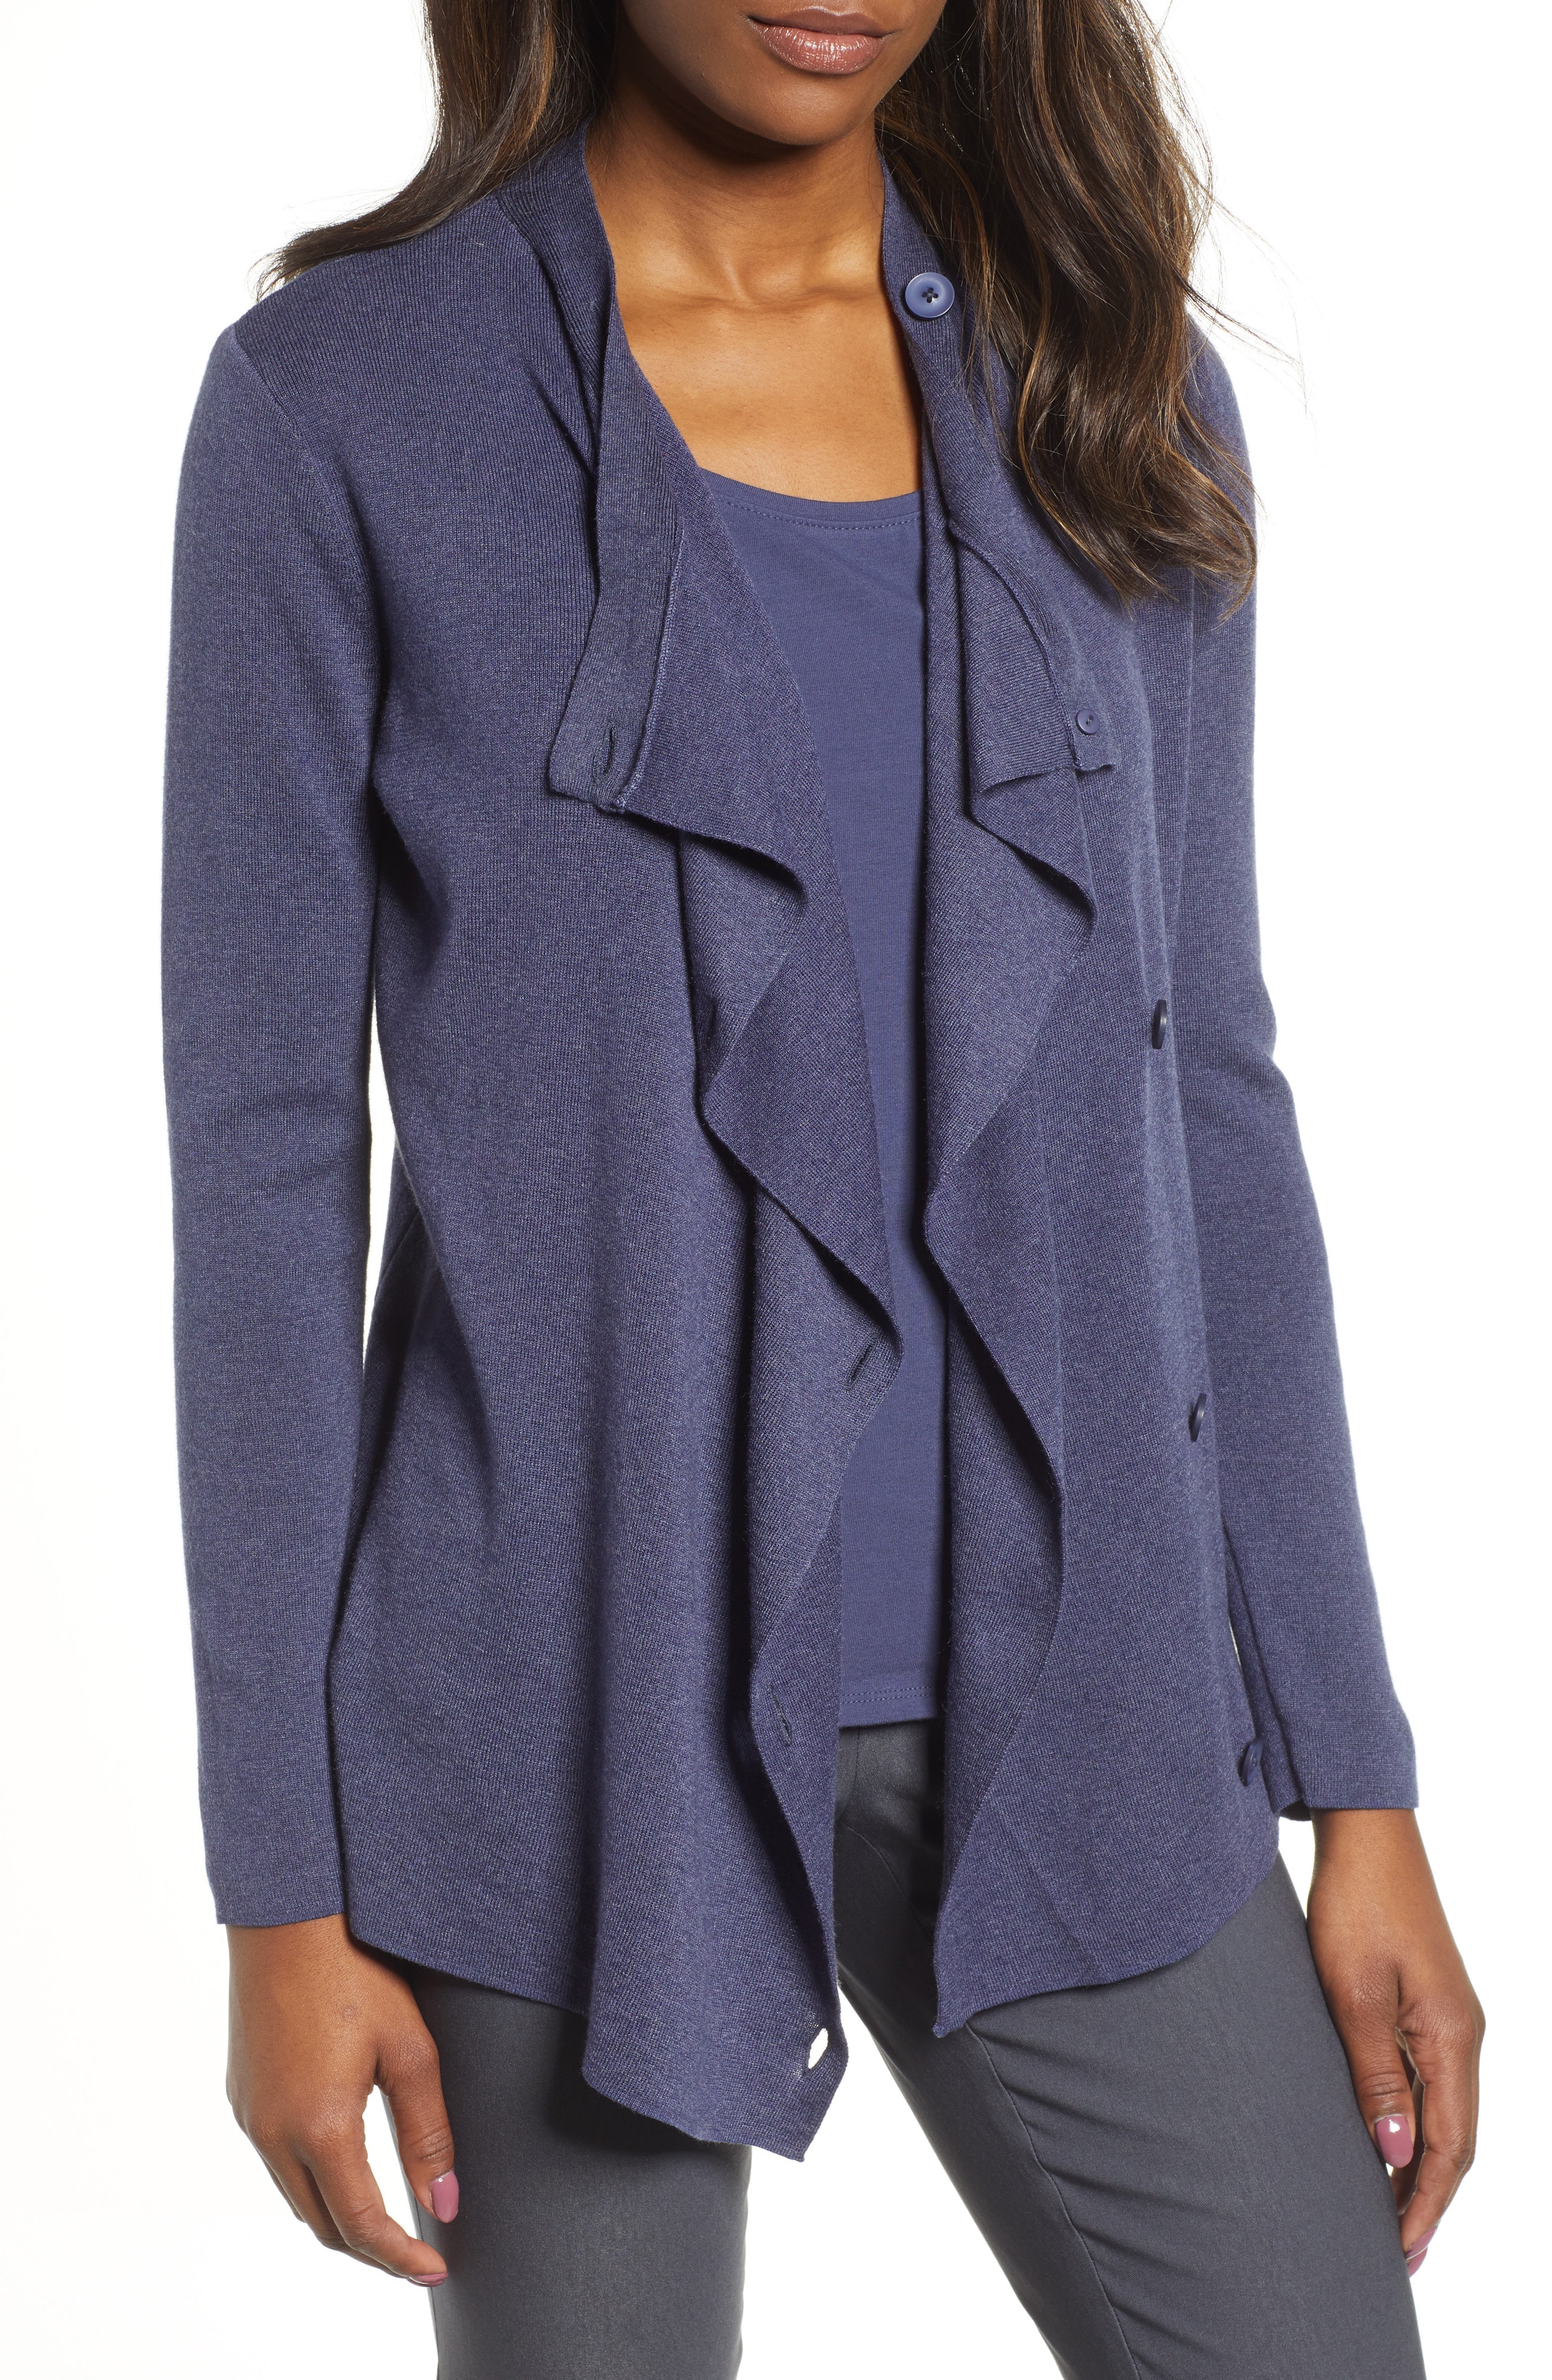 Nic + Zoe Open Or Close Cardigan In Navy